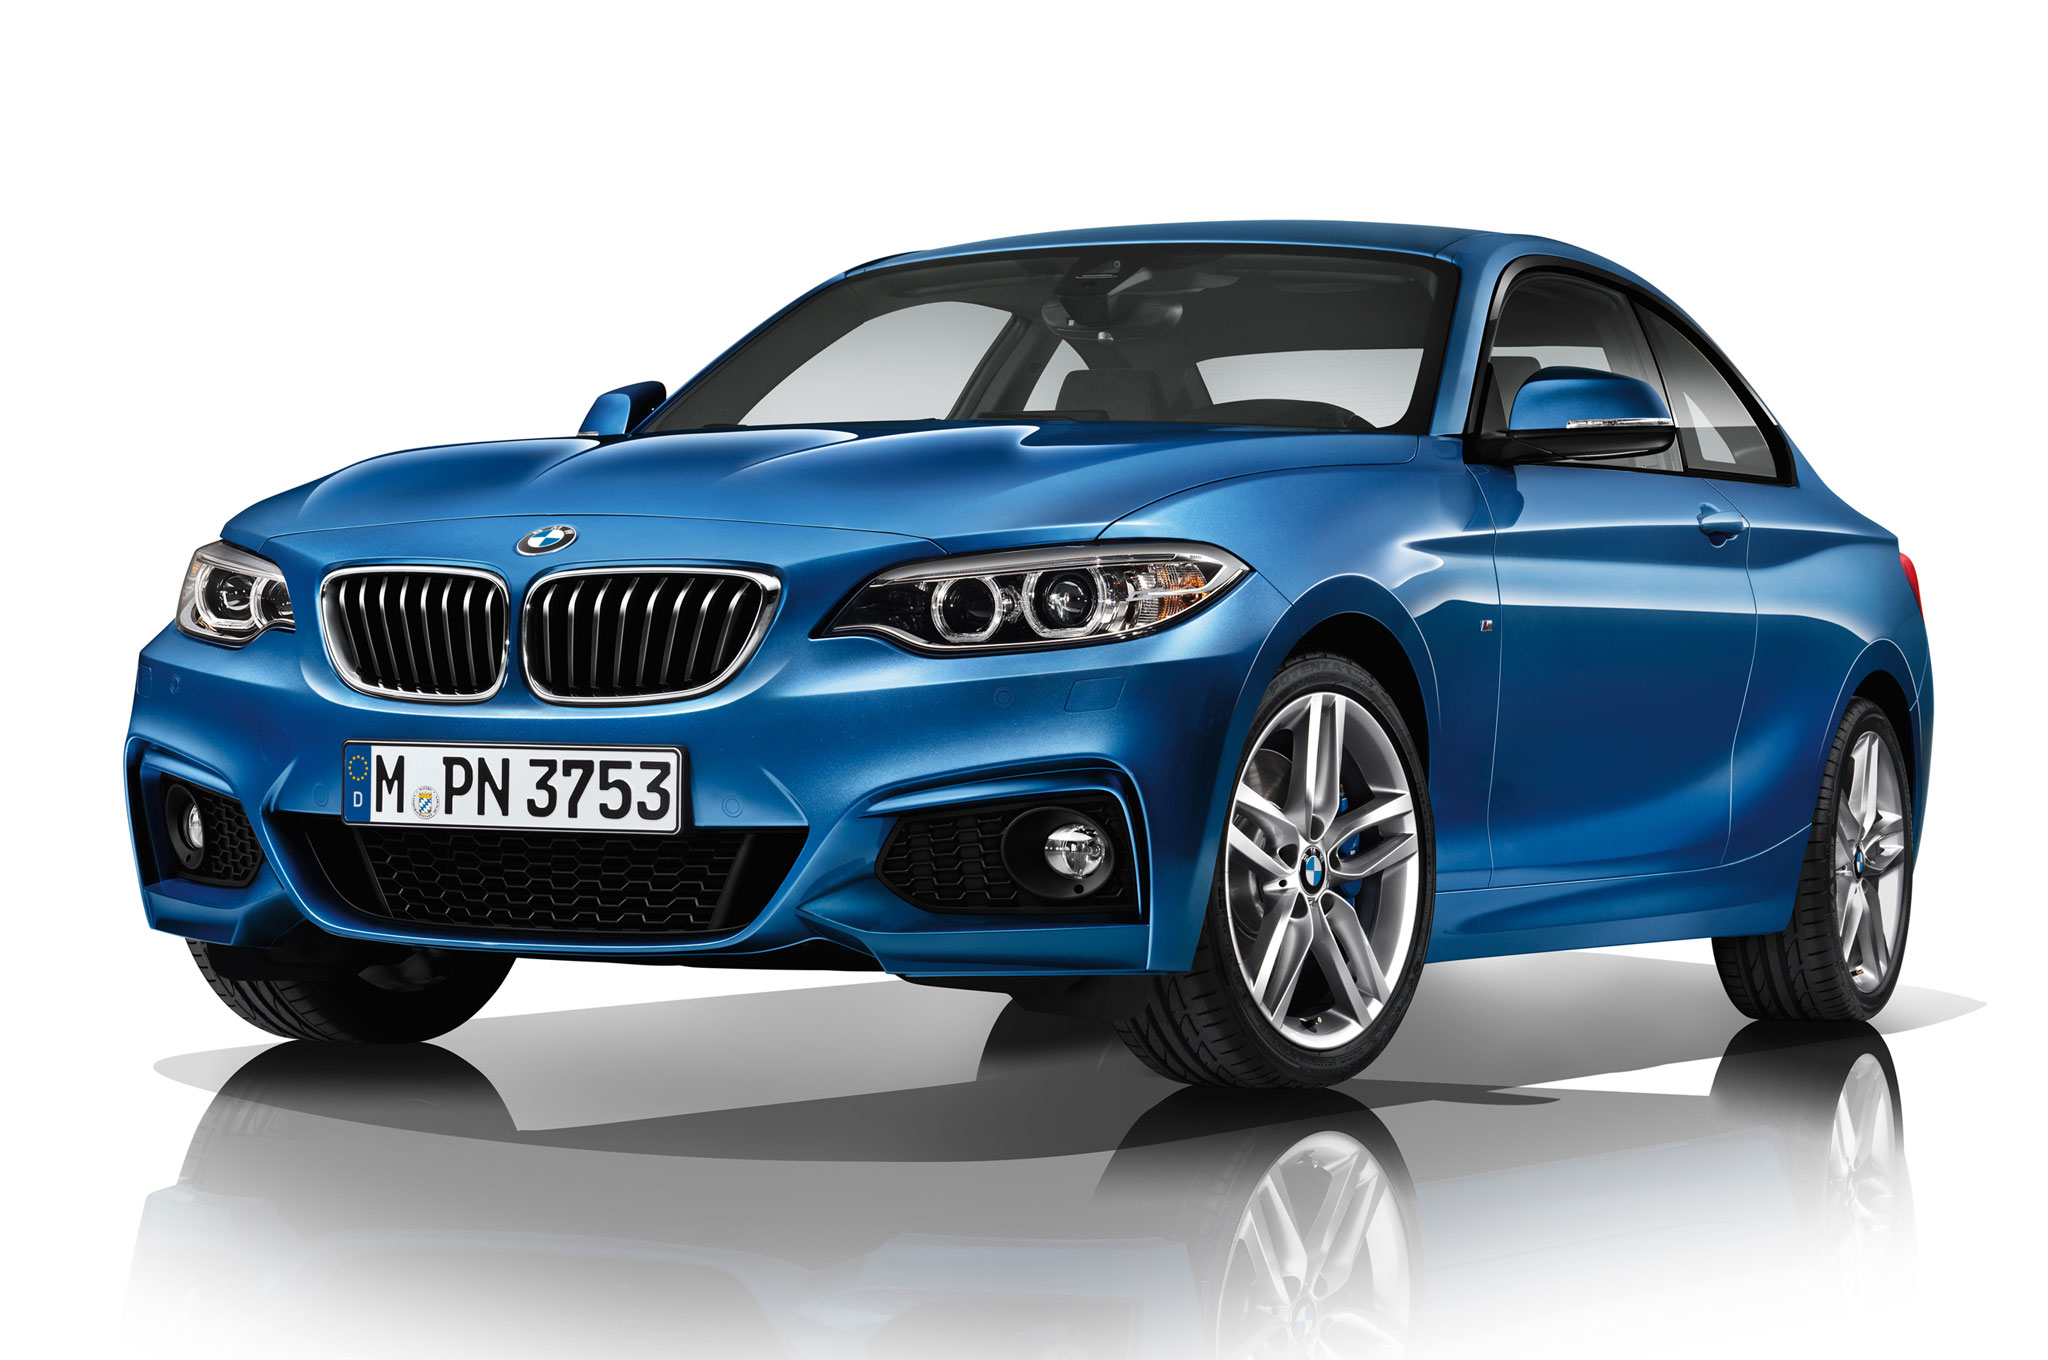 Images of 2014 BMW 2 Series Coupe | 2048x1360